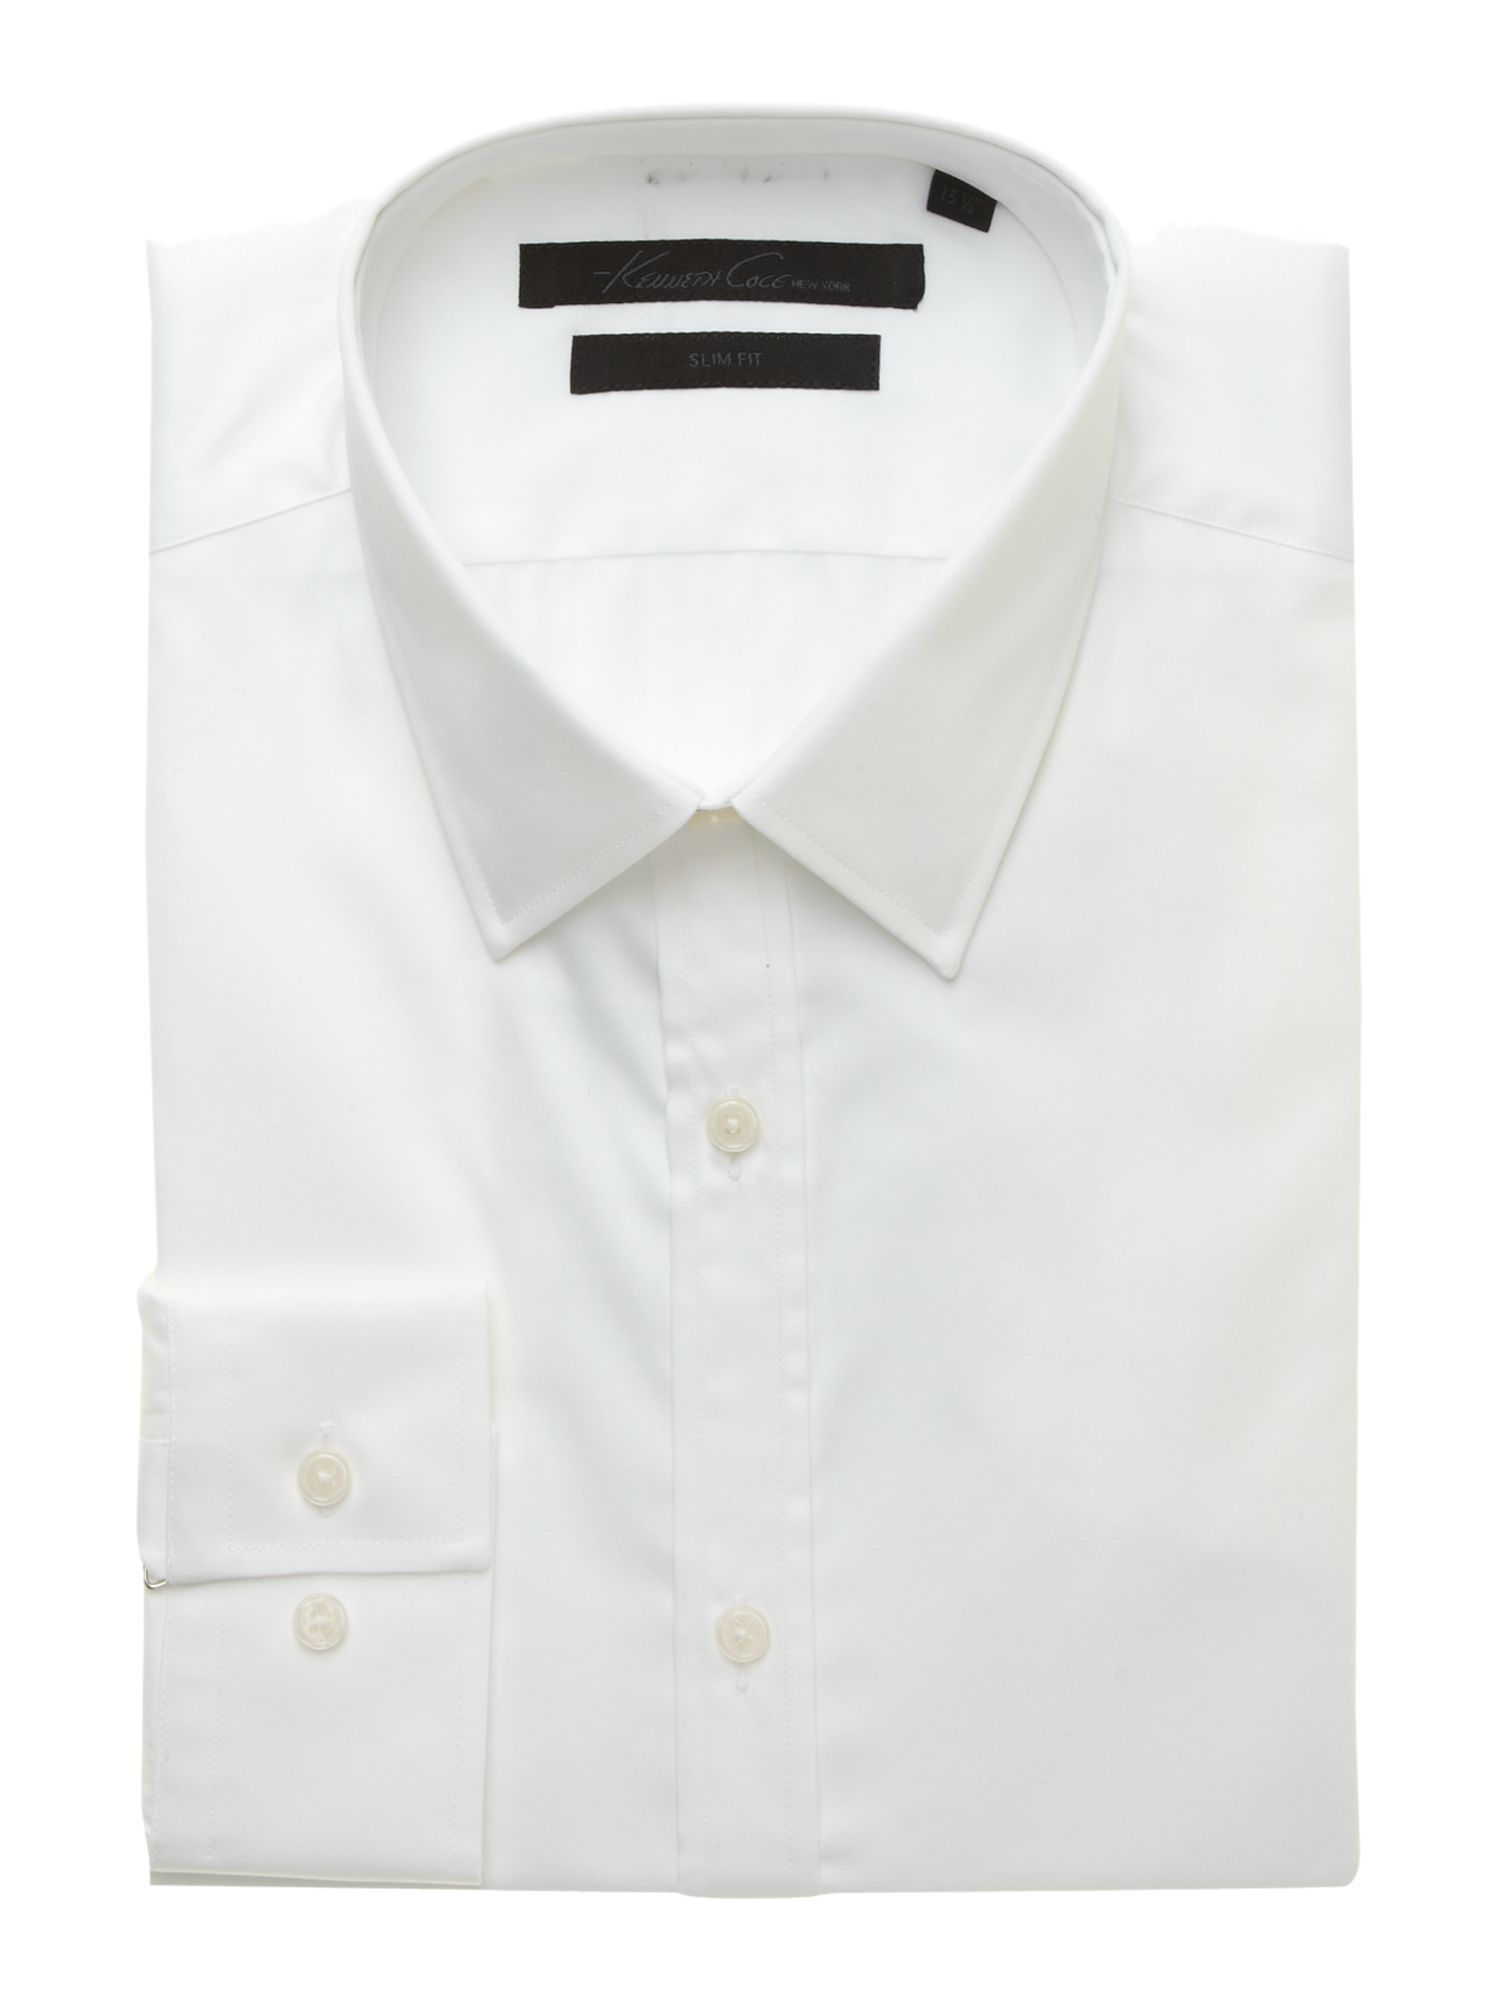 Double cuff poplin shirt with paisley trim